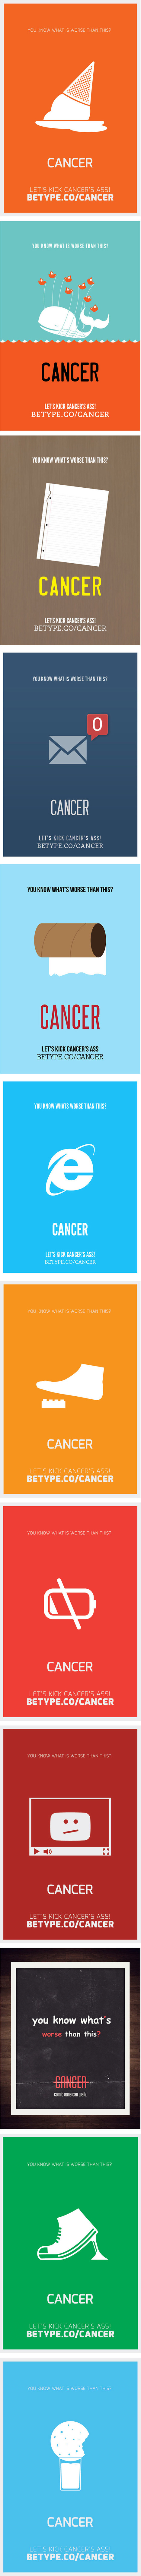 Graphisme & interactivité blog par Geoffrey Dorne » Cancer et humour… et oui c'est possible ! | aquarium | Scoop.it